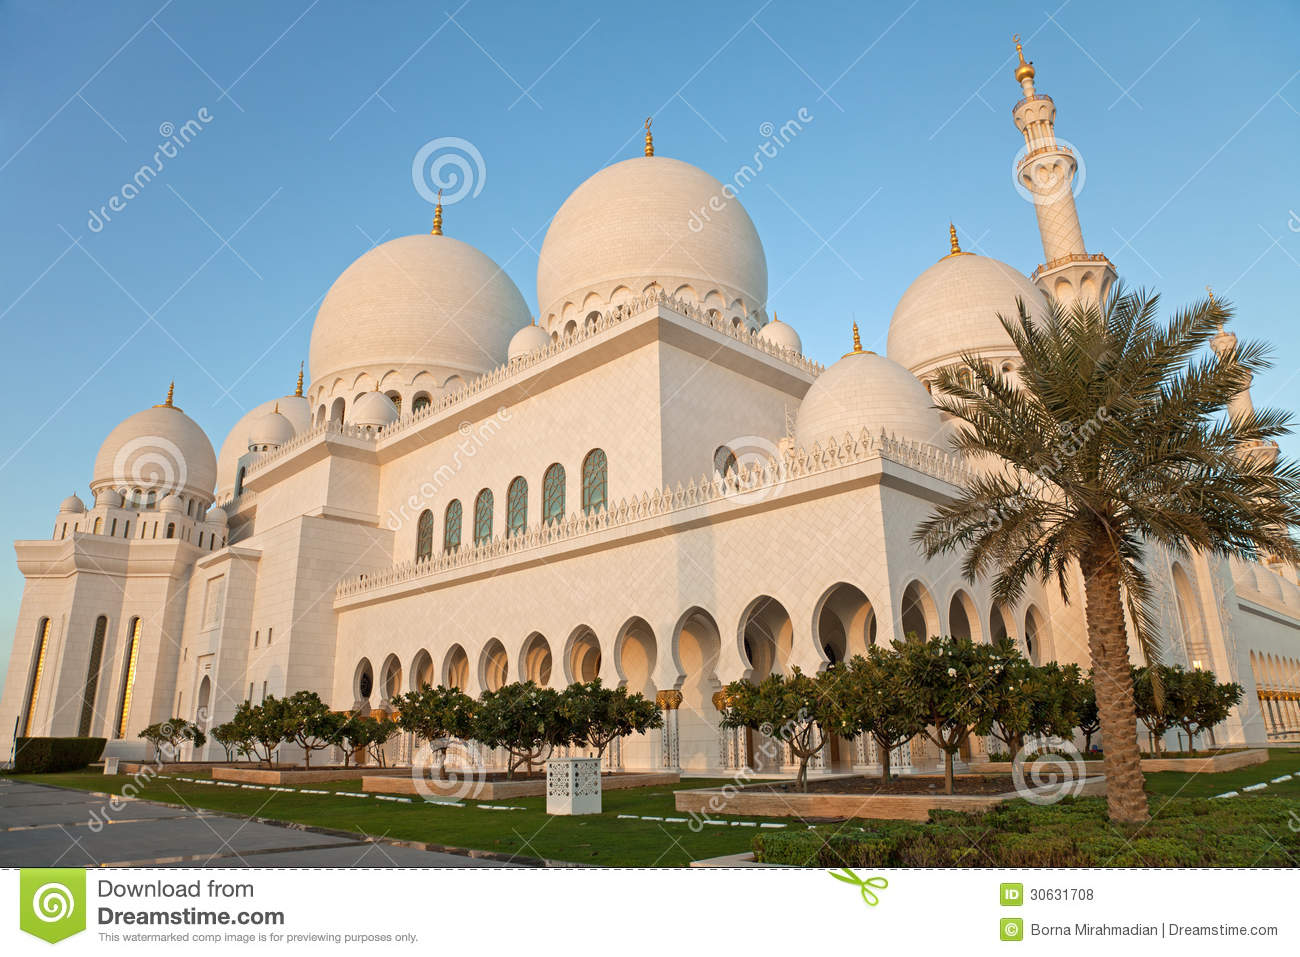 Exterior: Abu Dhabi Sheikh Zayed Mosque Exterior In The Daylight